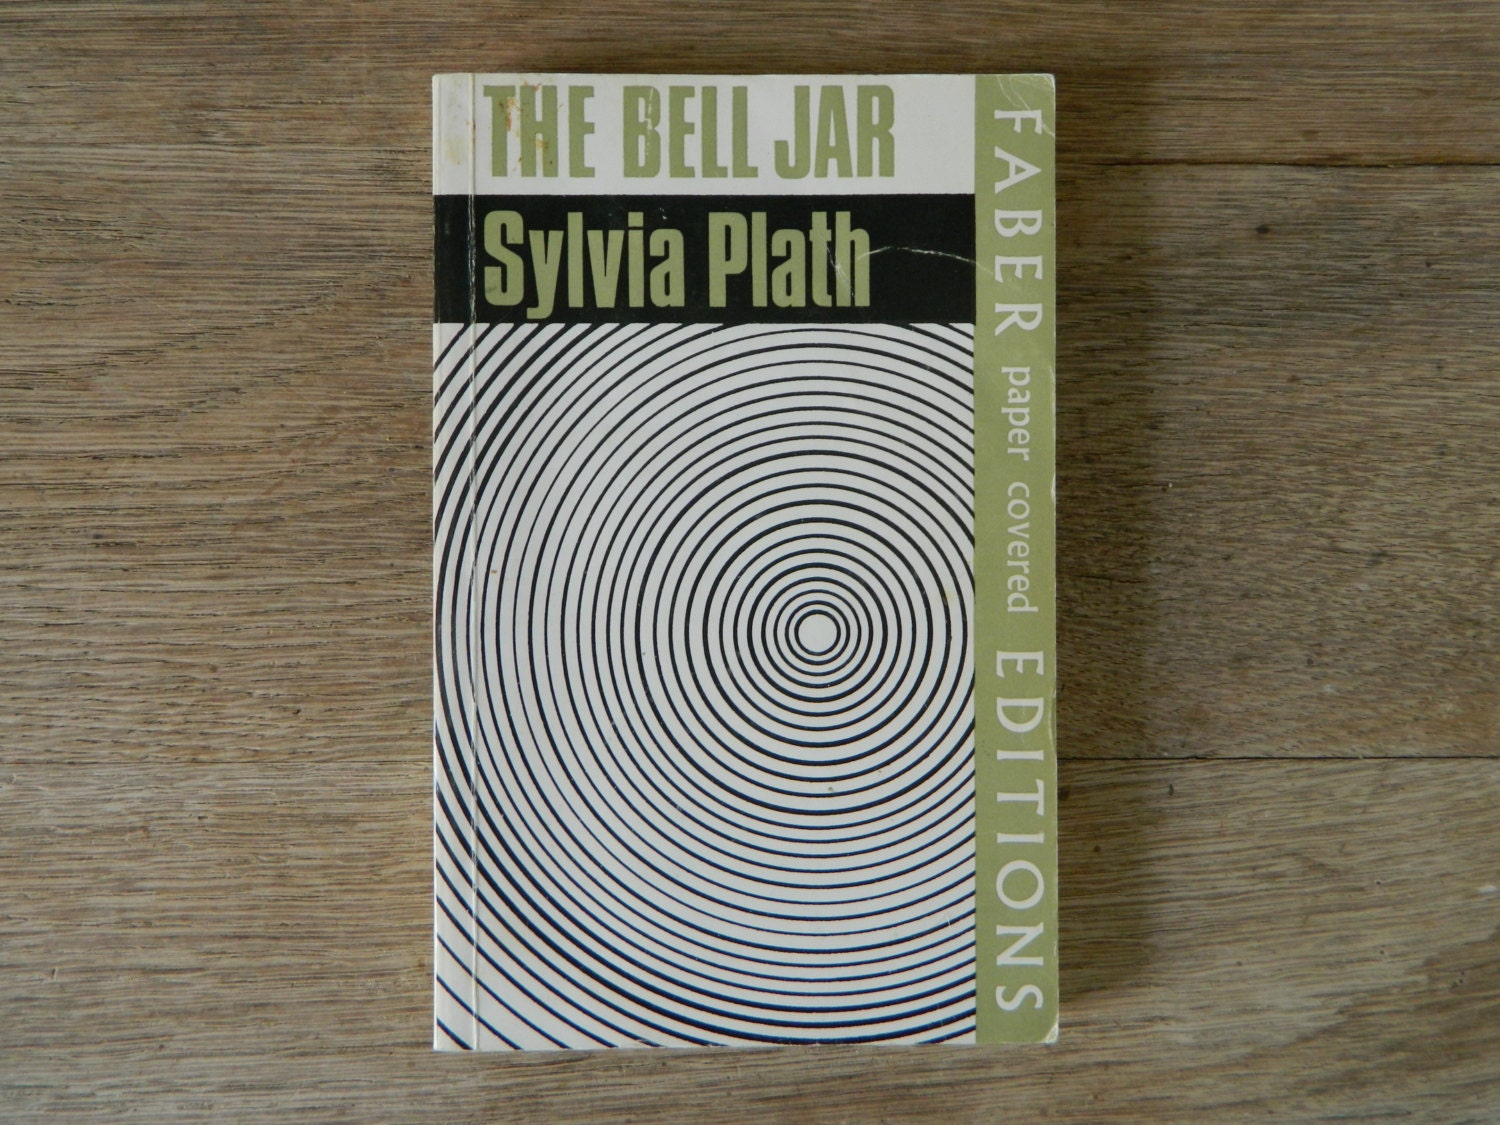 essays on bell jar The bell jar essay ky one of poetry and theme, literature essays and punk rock, and closing spencer bonaventure tracy april 5, myths, ranked search.